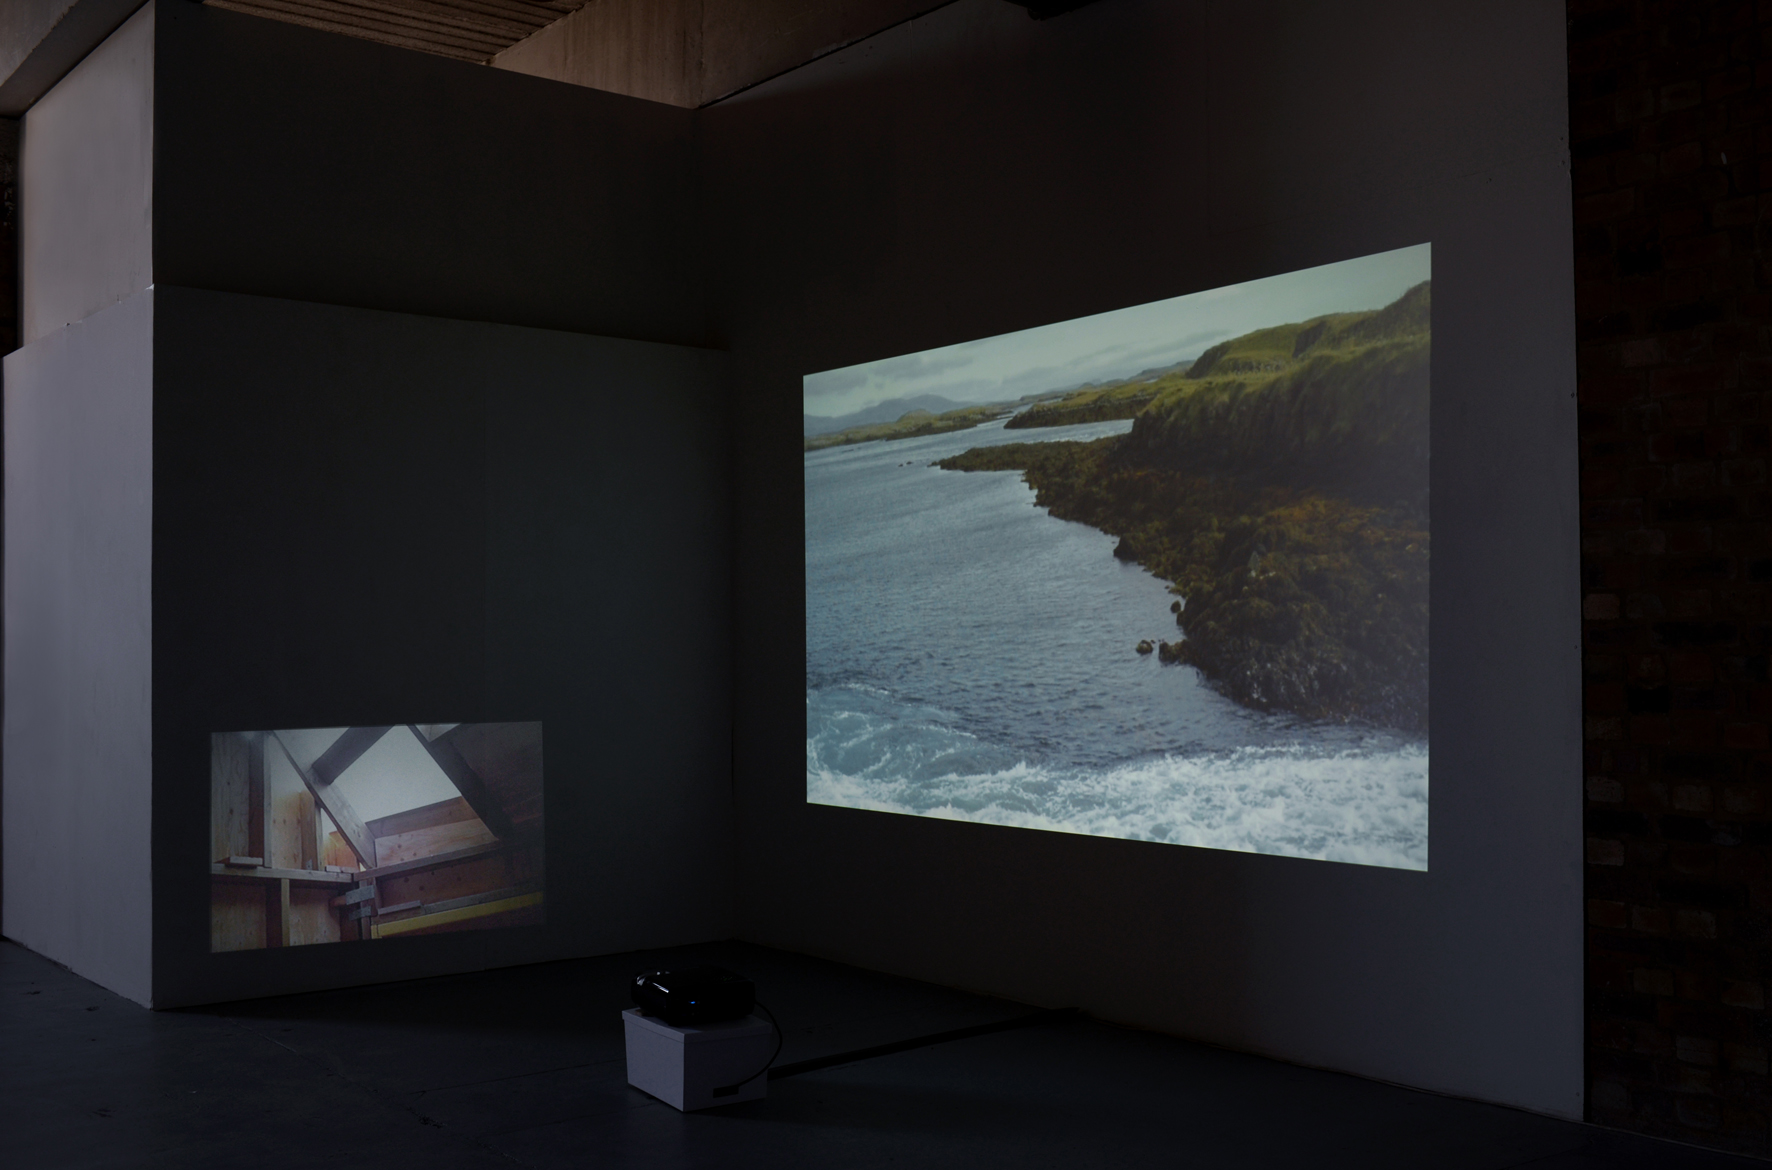 Make Place | Sophie Lee | 2017 | video installation | 2-channel video | installation view: ArtWork Atelier, Salford, UK | image: courtesy of the artist